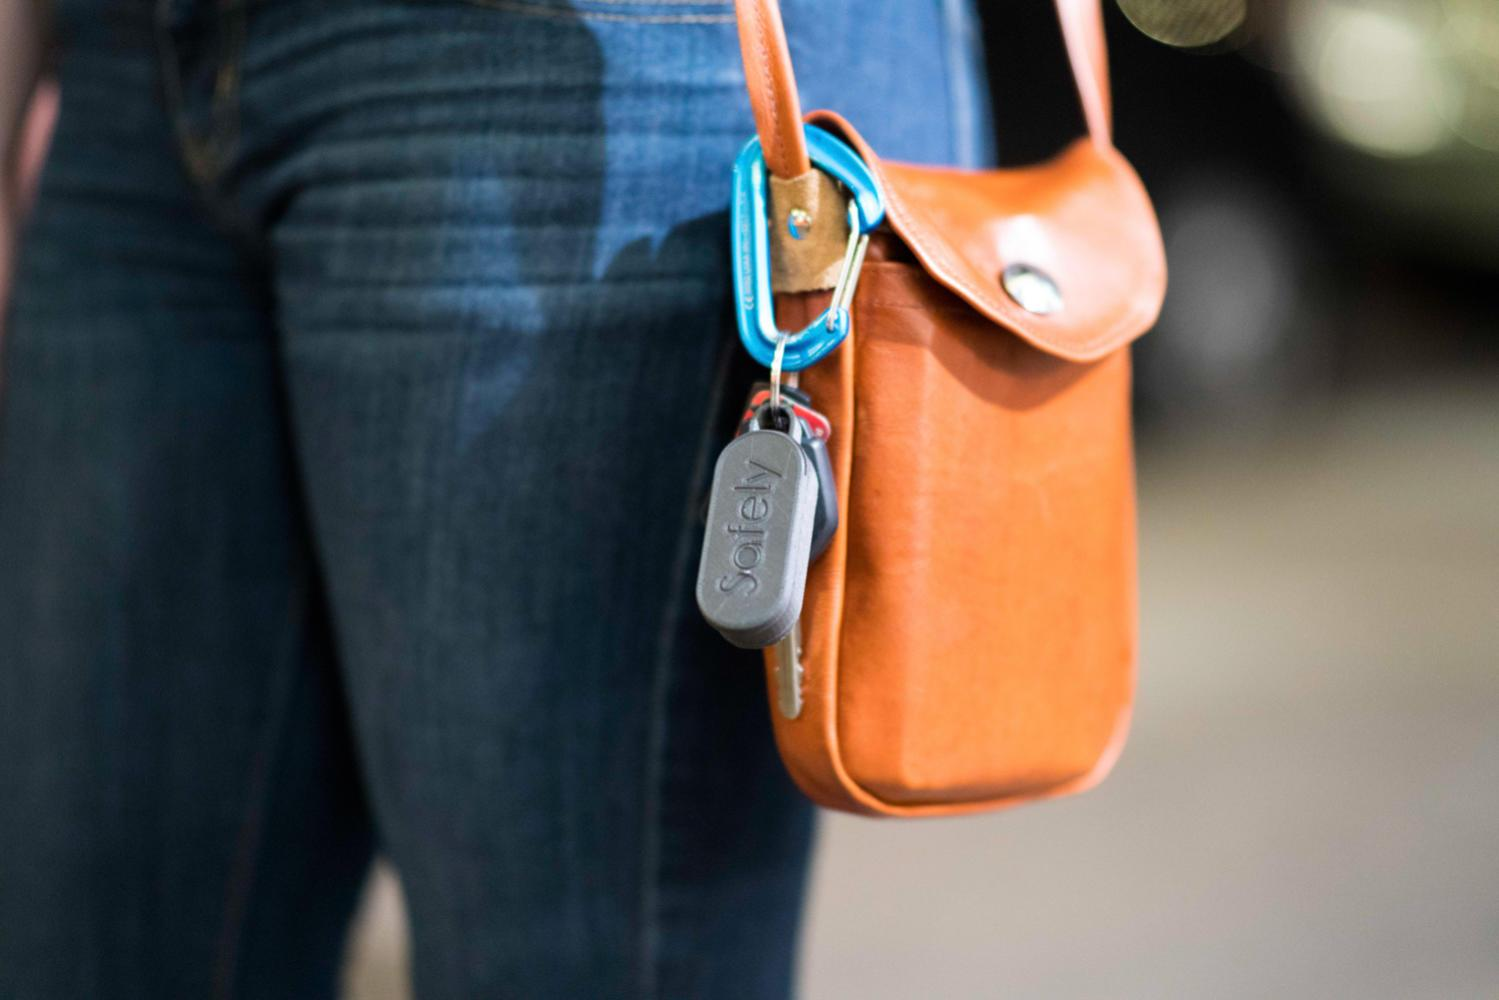 GoSafely, a wearable device that can be automated to make emergency calls, is attached to a bag as a keychain. (Photo courtesy of Koby Schmetterling)